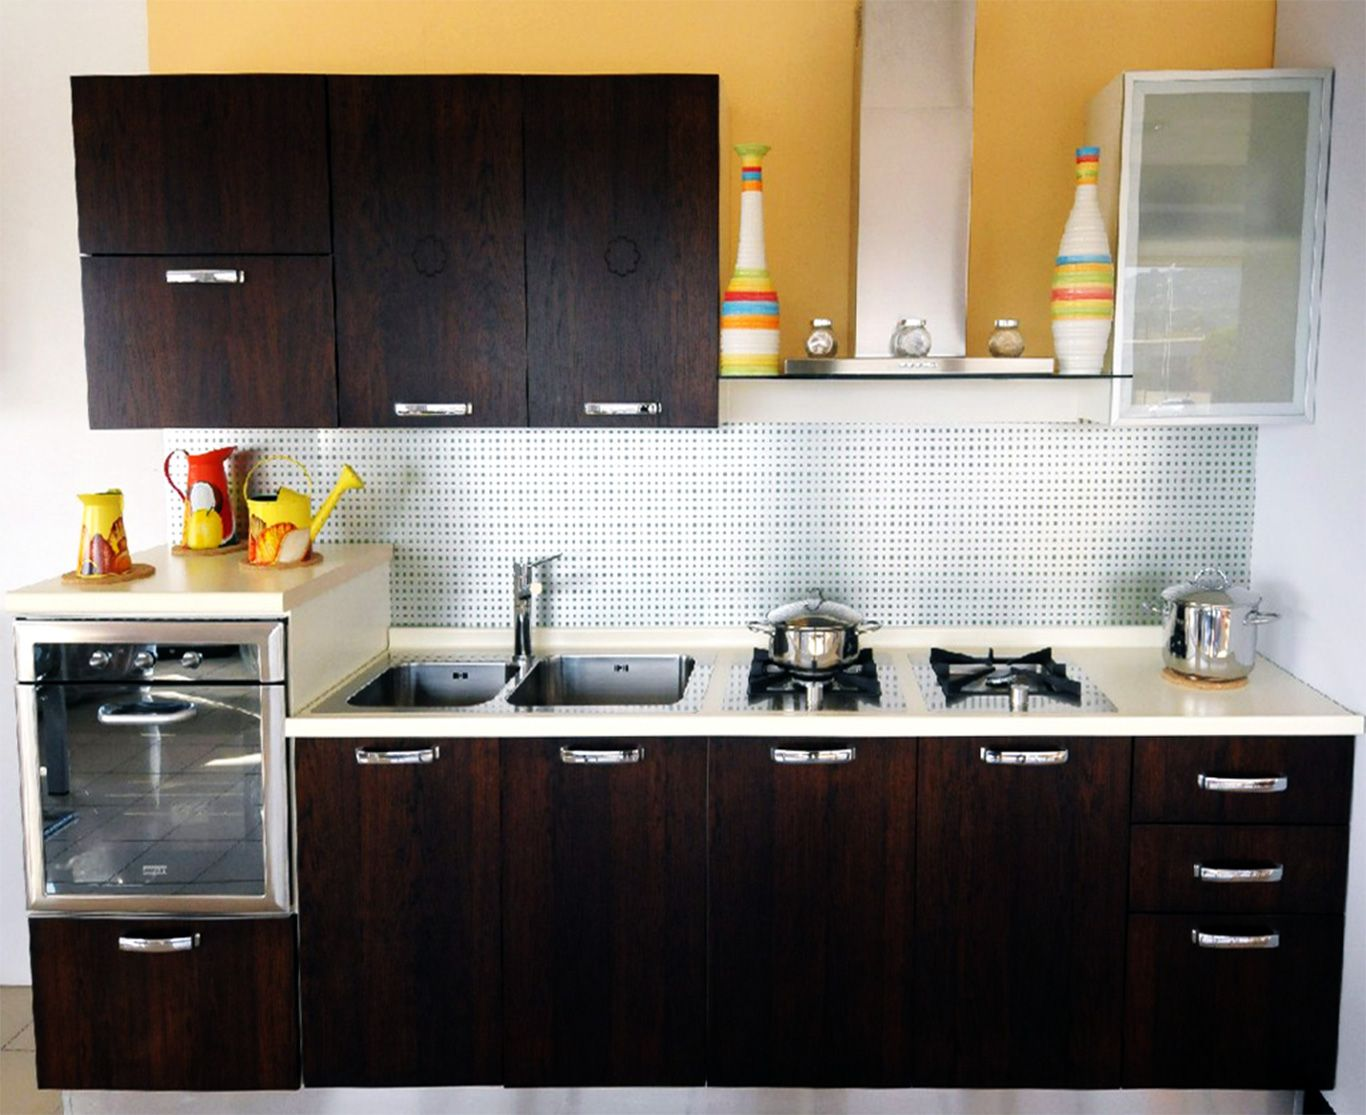 Pune kitchens is the modular kitchen shutters supplier for Modern kitchen furniture design